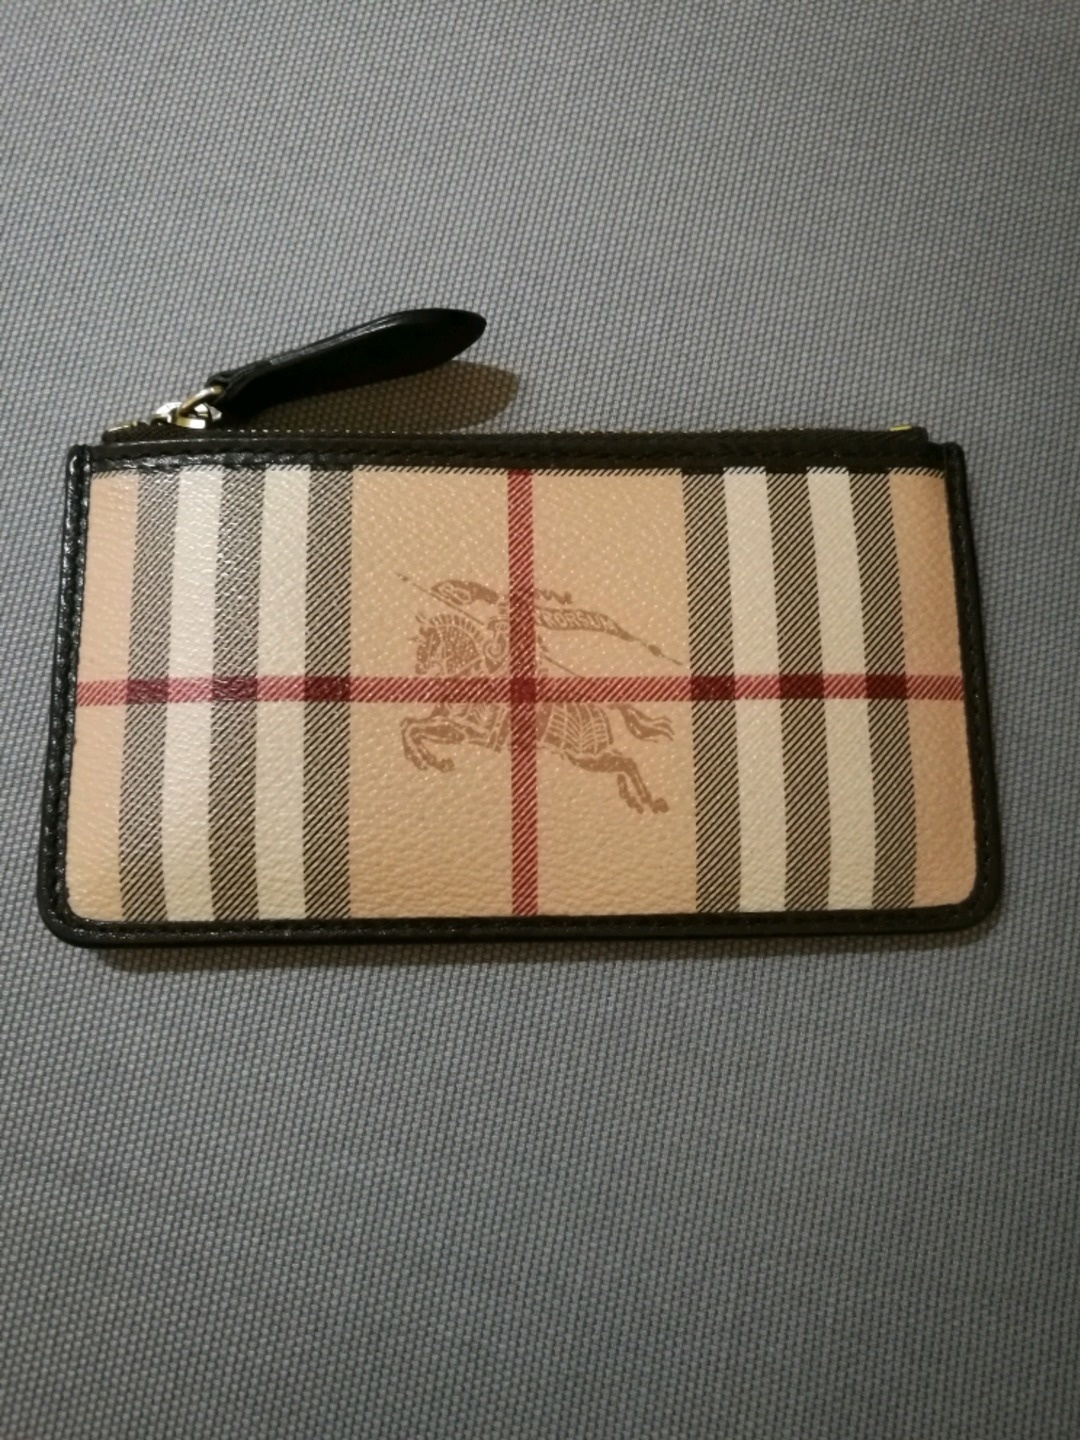 Women's bags & purses - BURBERRY photo 1